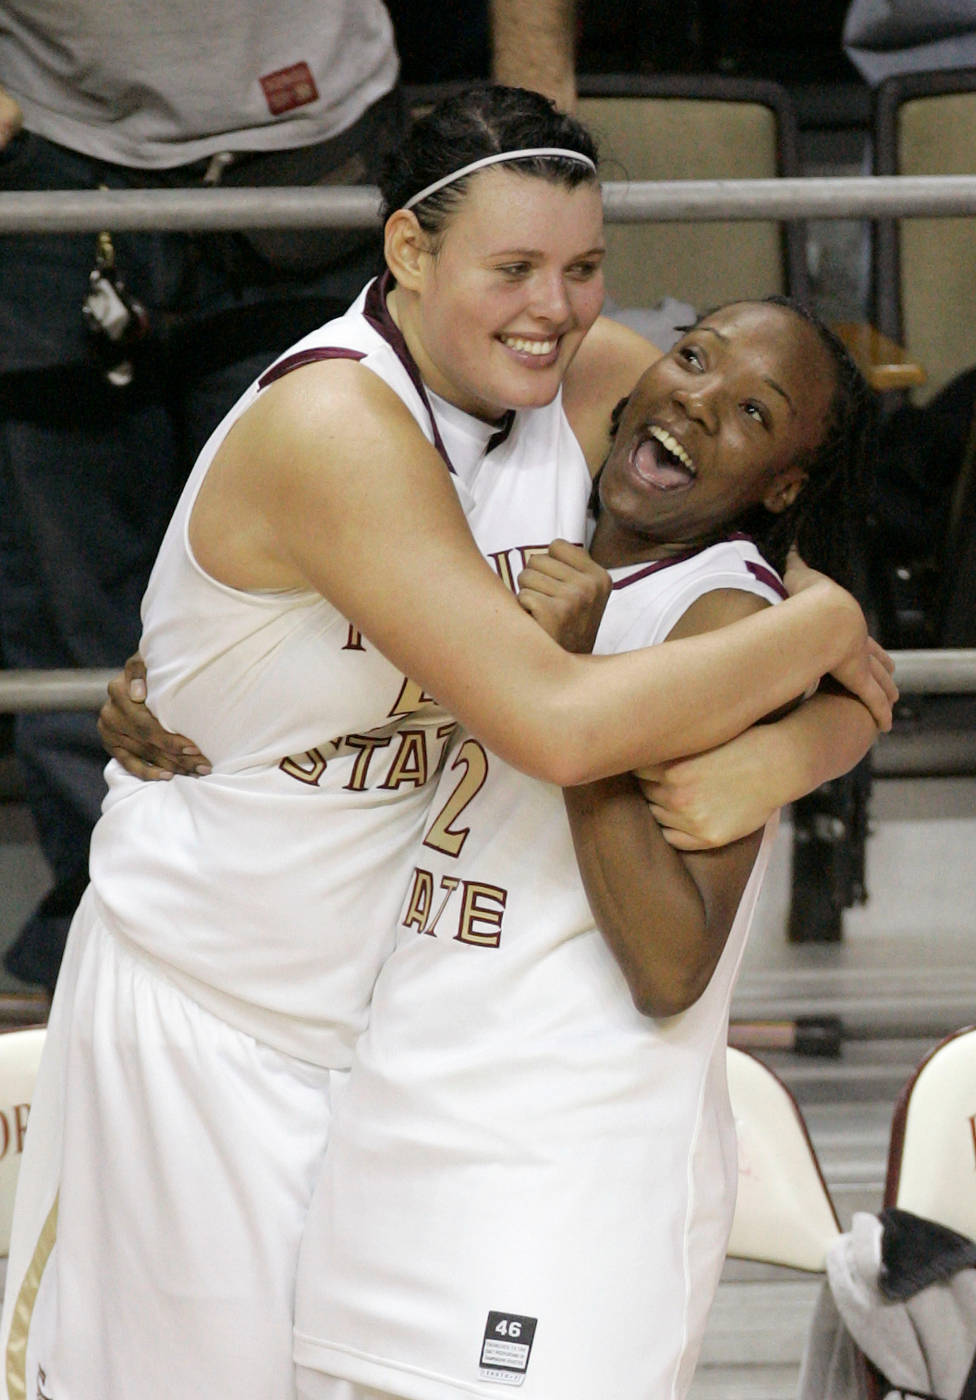 Florida State's Cierra Bravard, left, and teammate Alysha Harvin, celebrate their 82-75 win over Duke during an NCAA college basketball game, Thursday, Jan. 29, 2009, in Tallahassee, Fla. (AP Photo/Phil Coale)